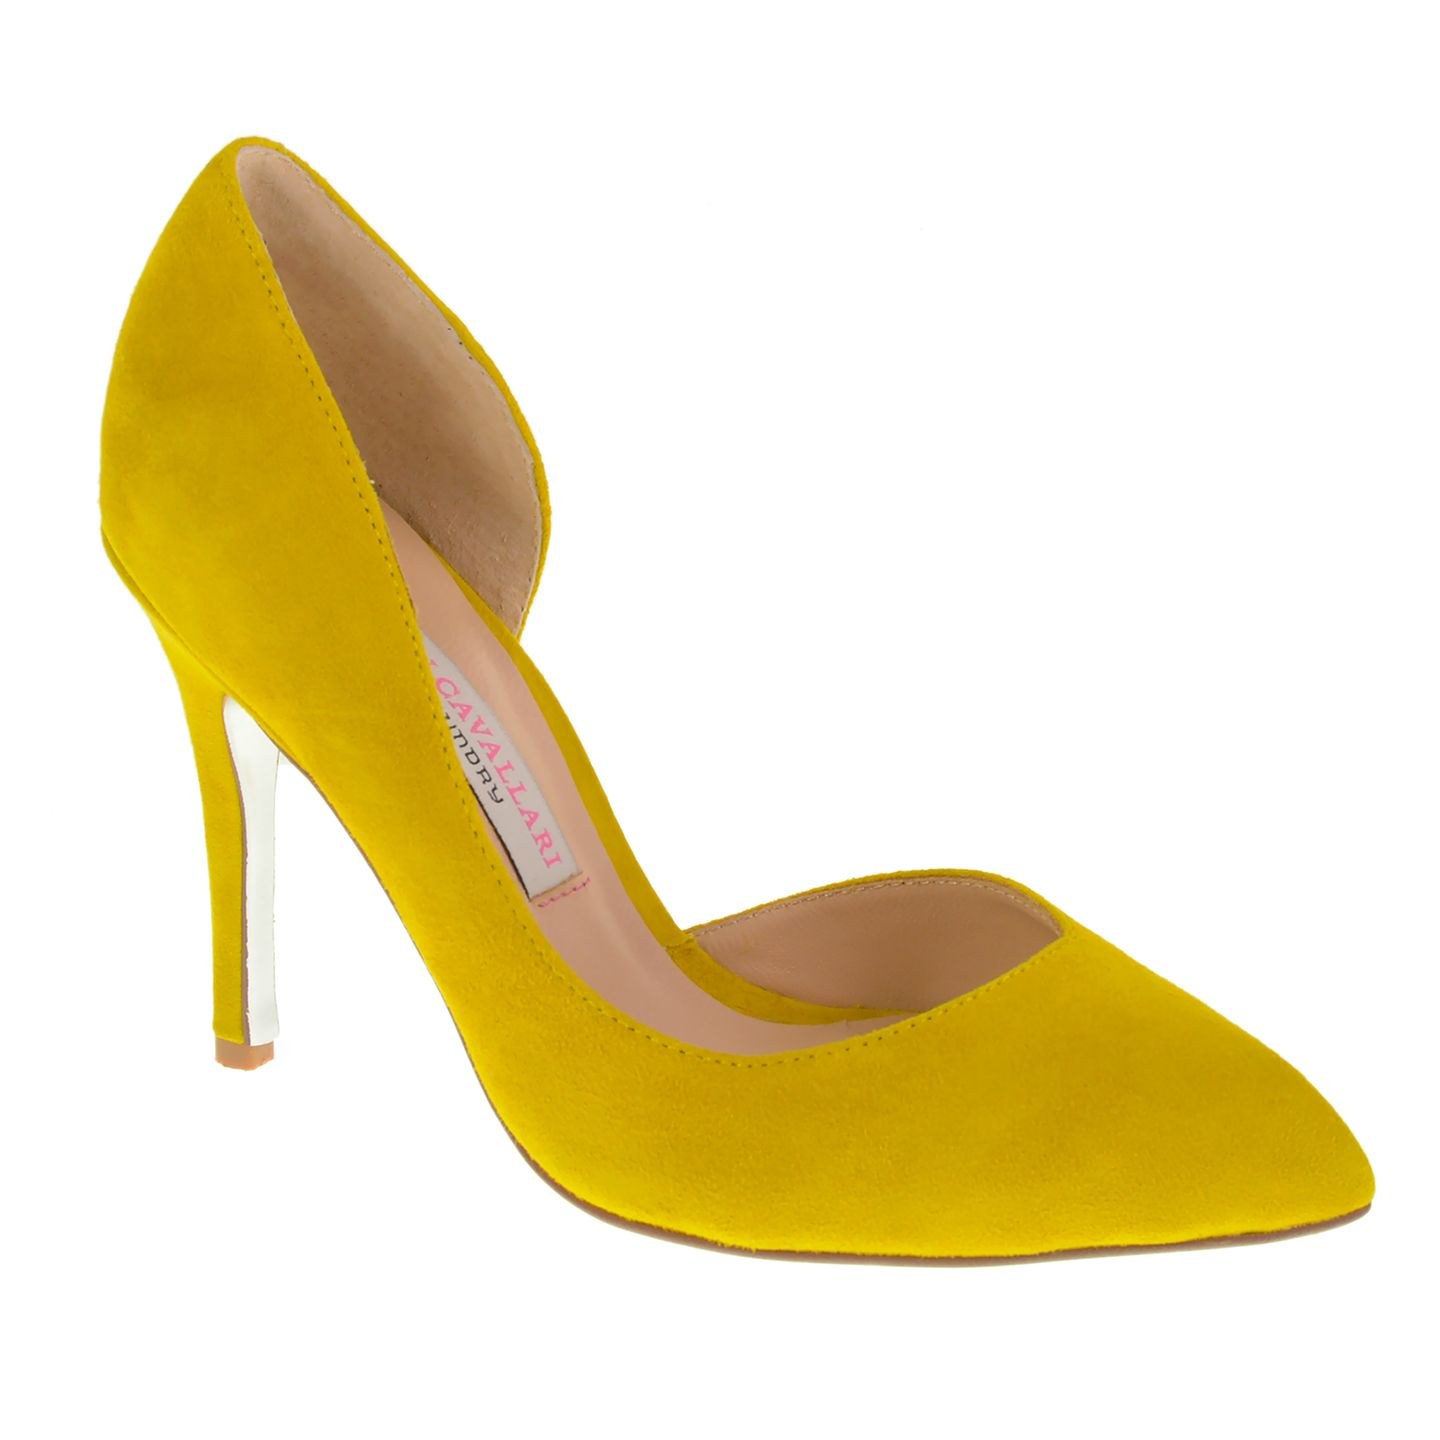 We loved JLo's mustard yellow Golden Globes dress! Try adding a pop of the hot color to your outfit with our Kristin Cavallari Copertina D'Orsay Pumps in Yellow